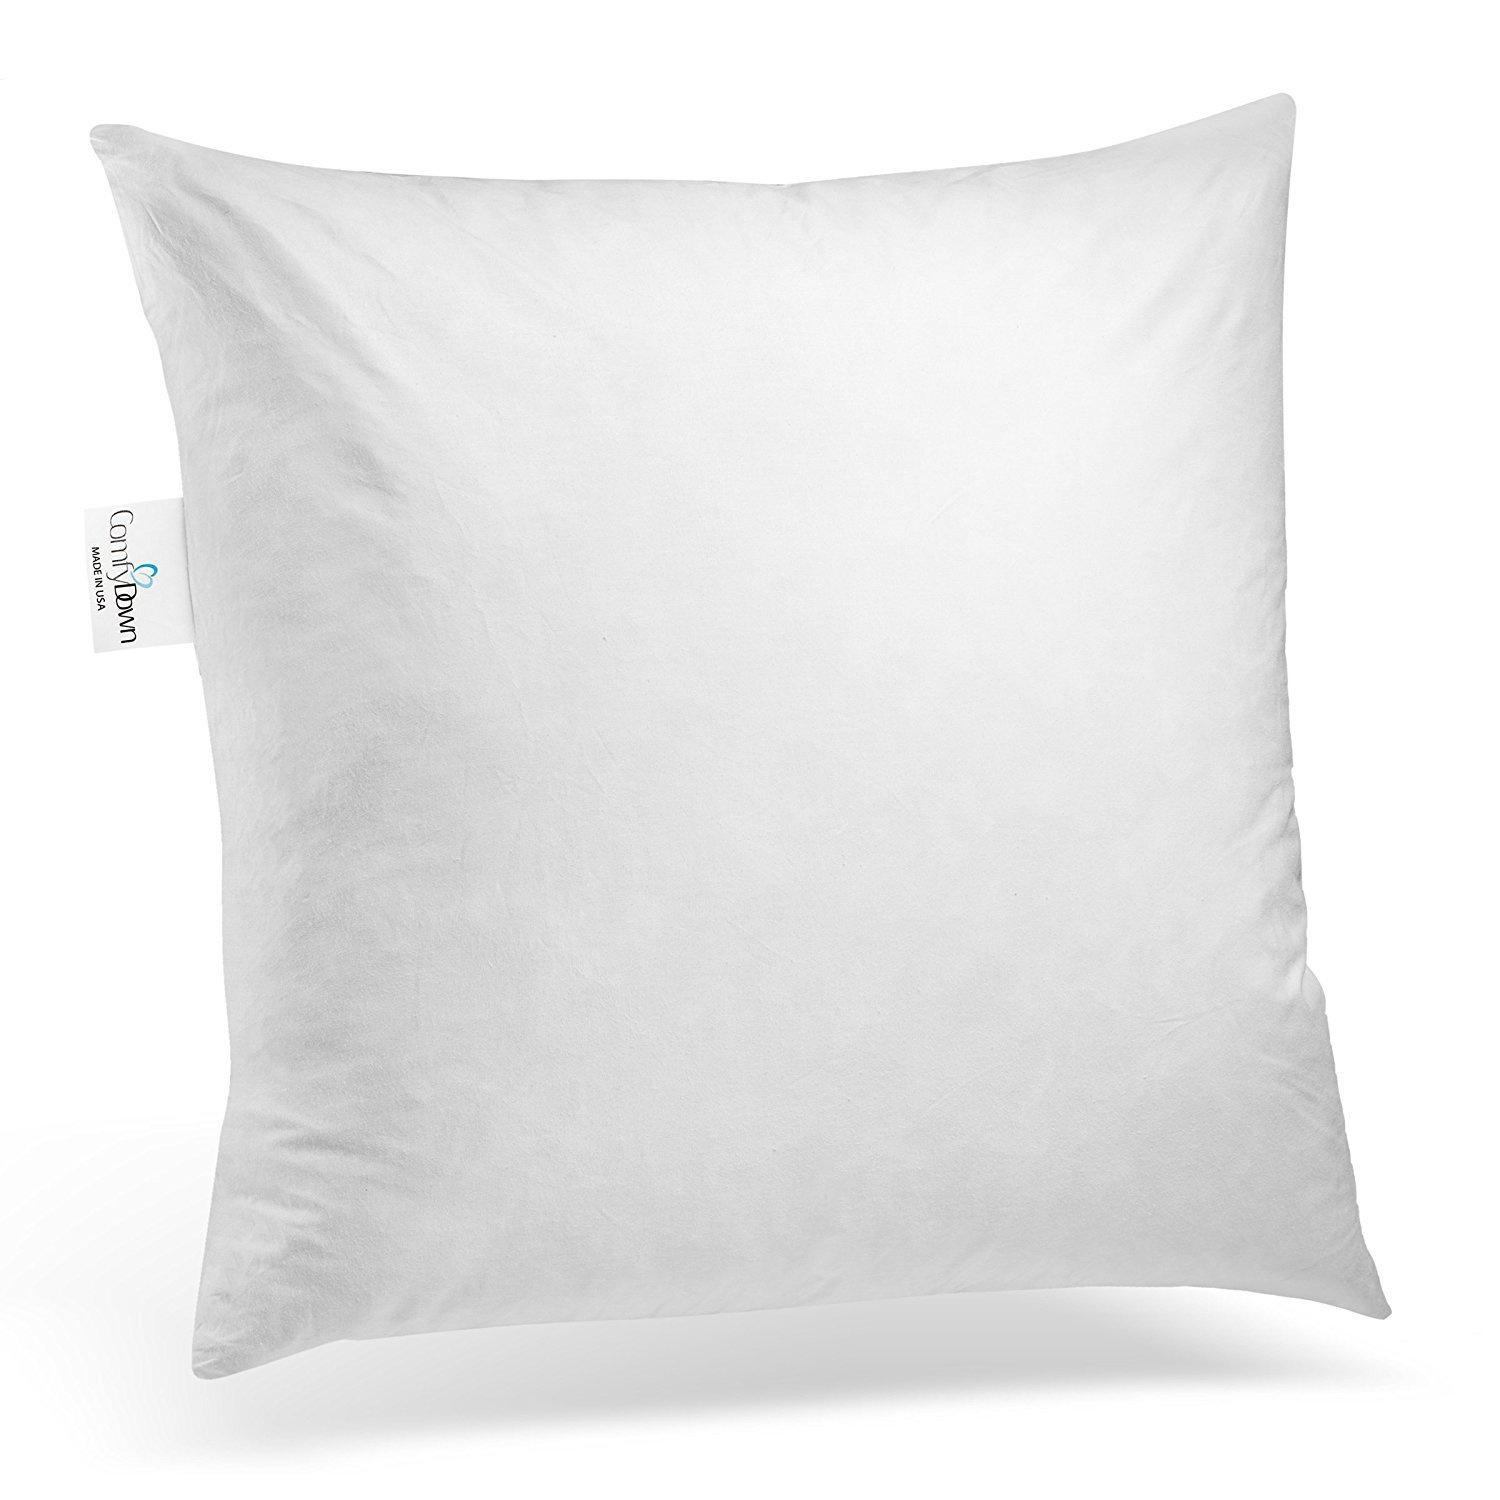 Amazon.com: ComfyDown 20% Feather 20% Down, 20 X 20 Square ...